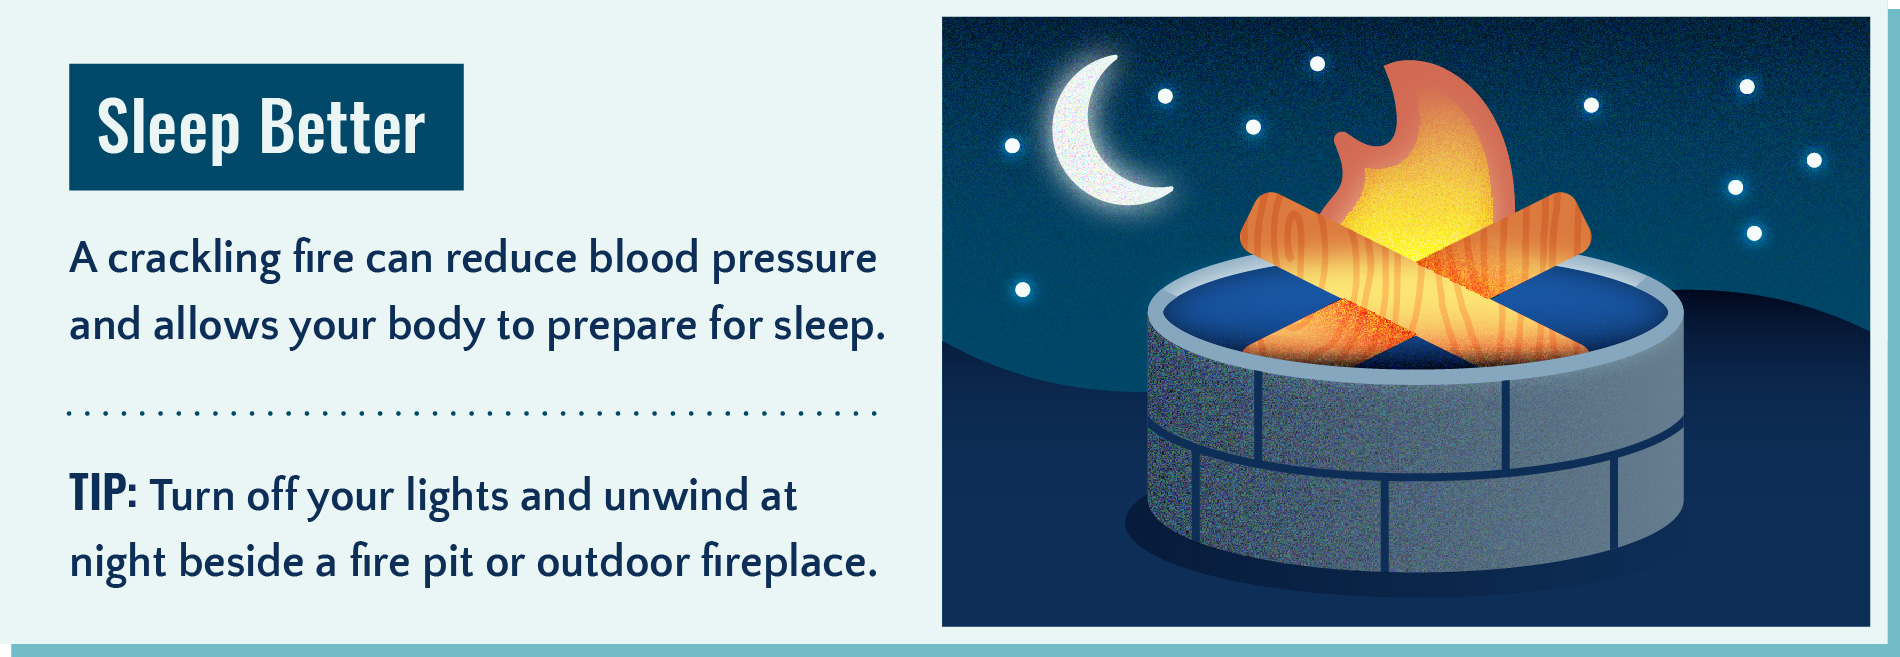 Spending time outdoors can help you sleep better at night.